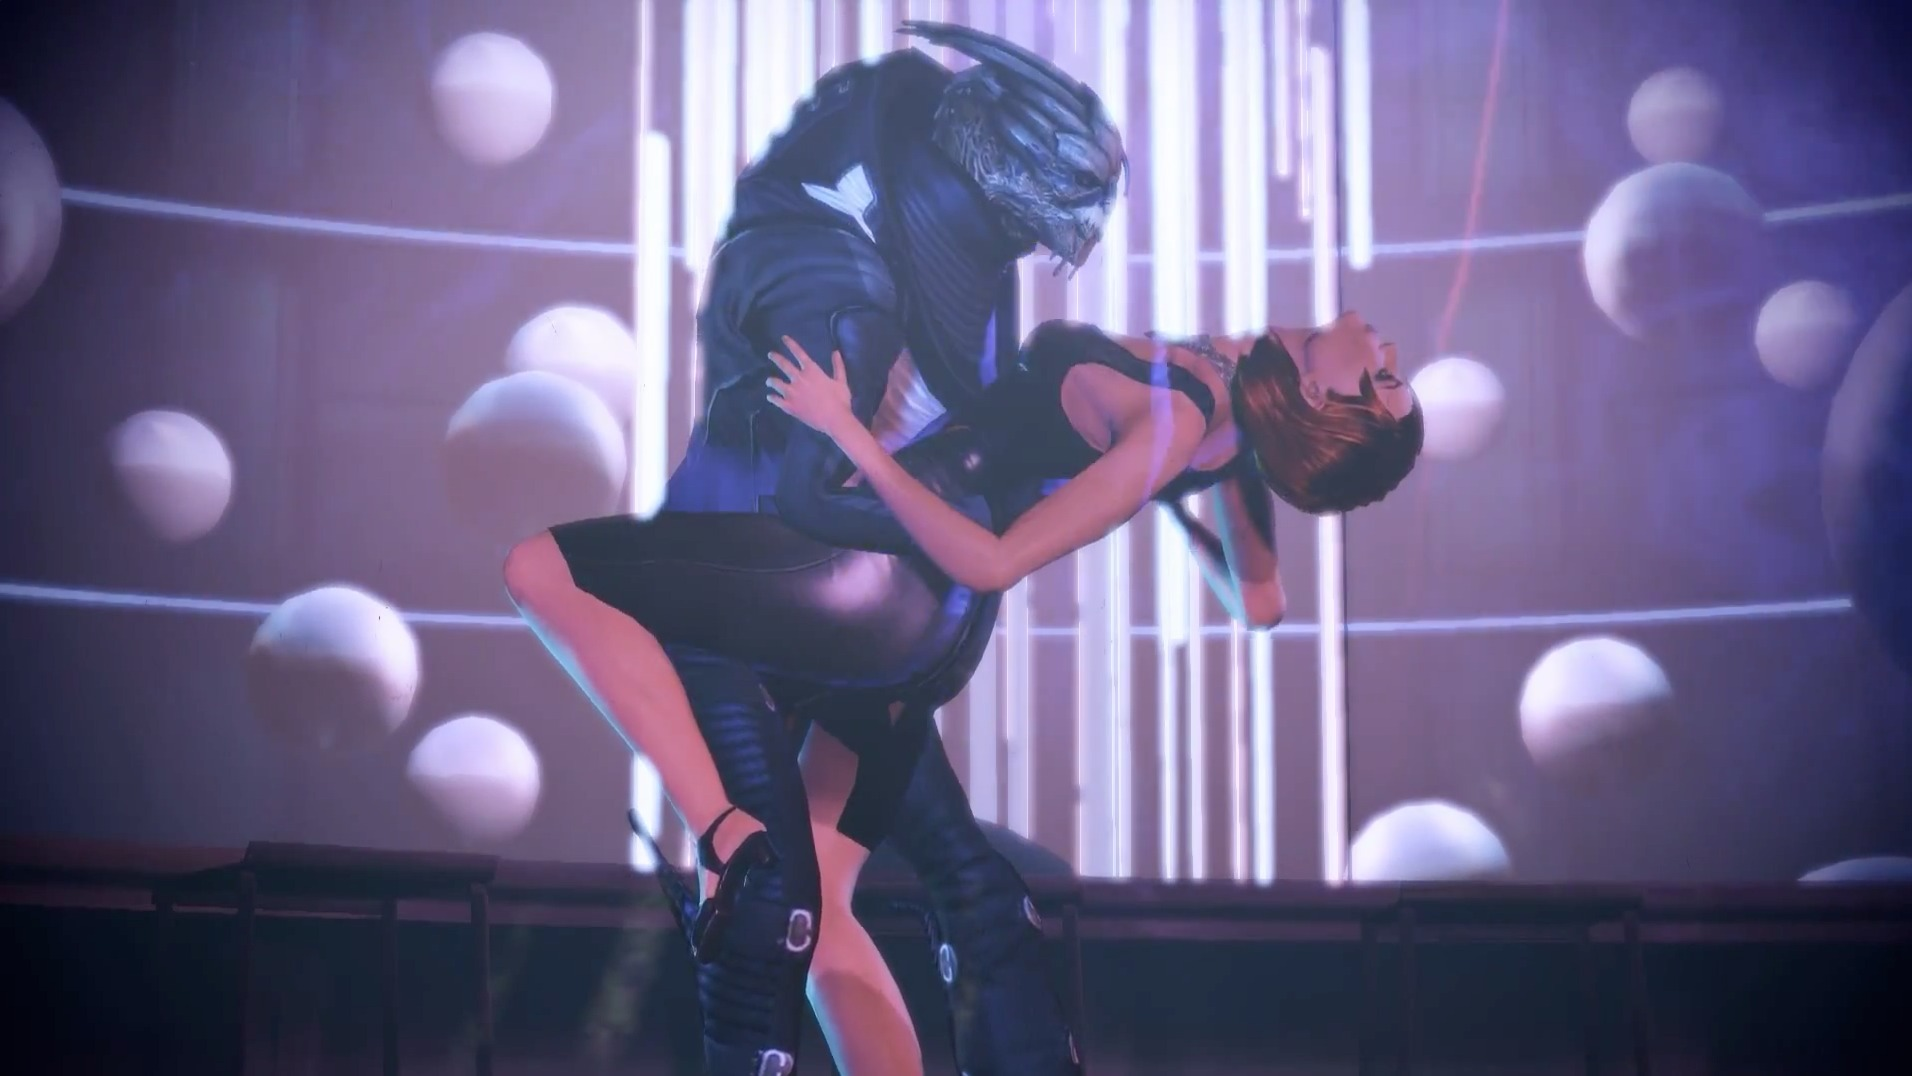 Why, yes, that is Commander Shepard and Garrus Vakarian dancing the tango. This essentially summarizes the tone of the whole DLC pack: it's irreverent, and it's <em>awesome</em>.